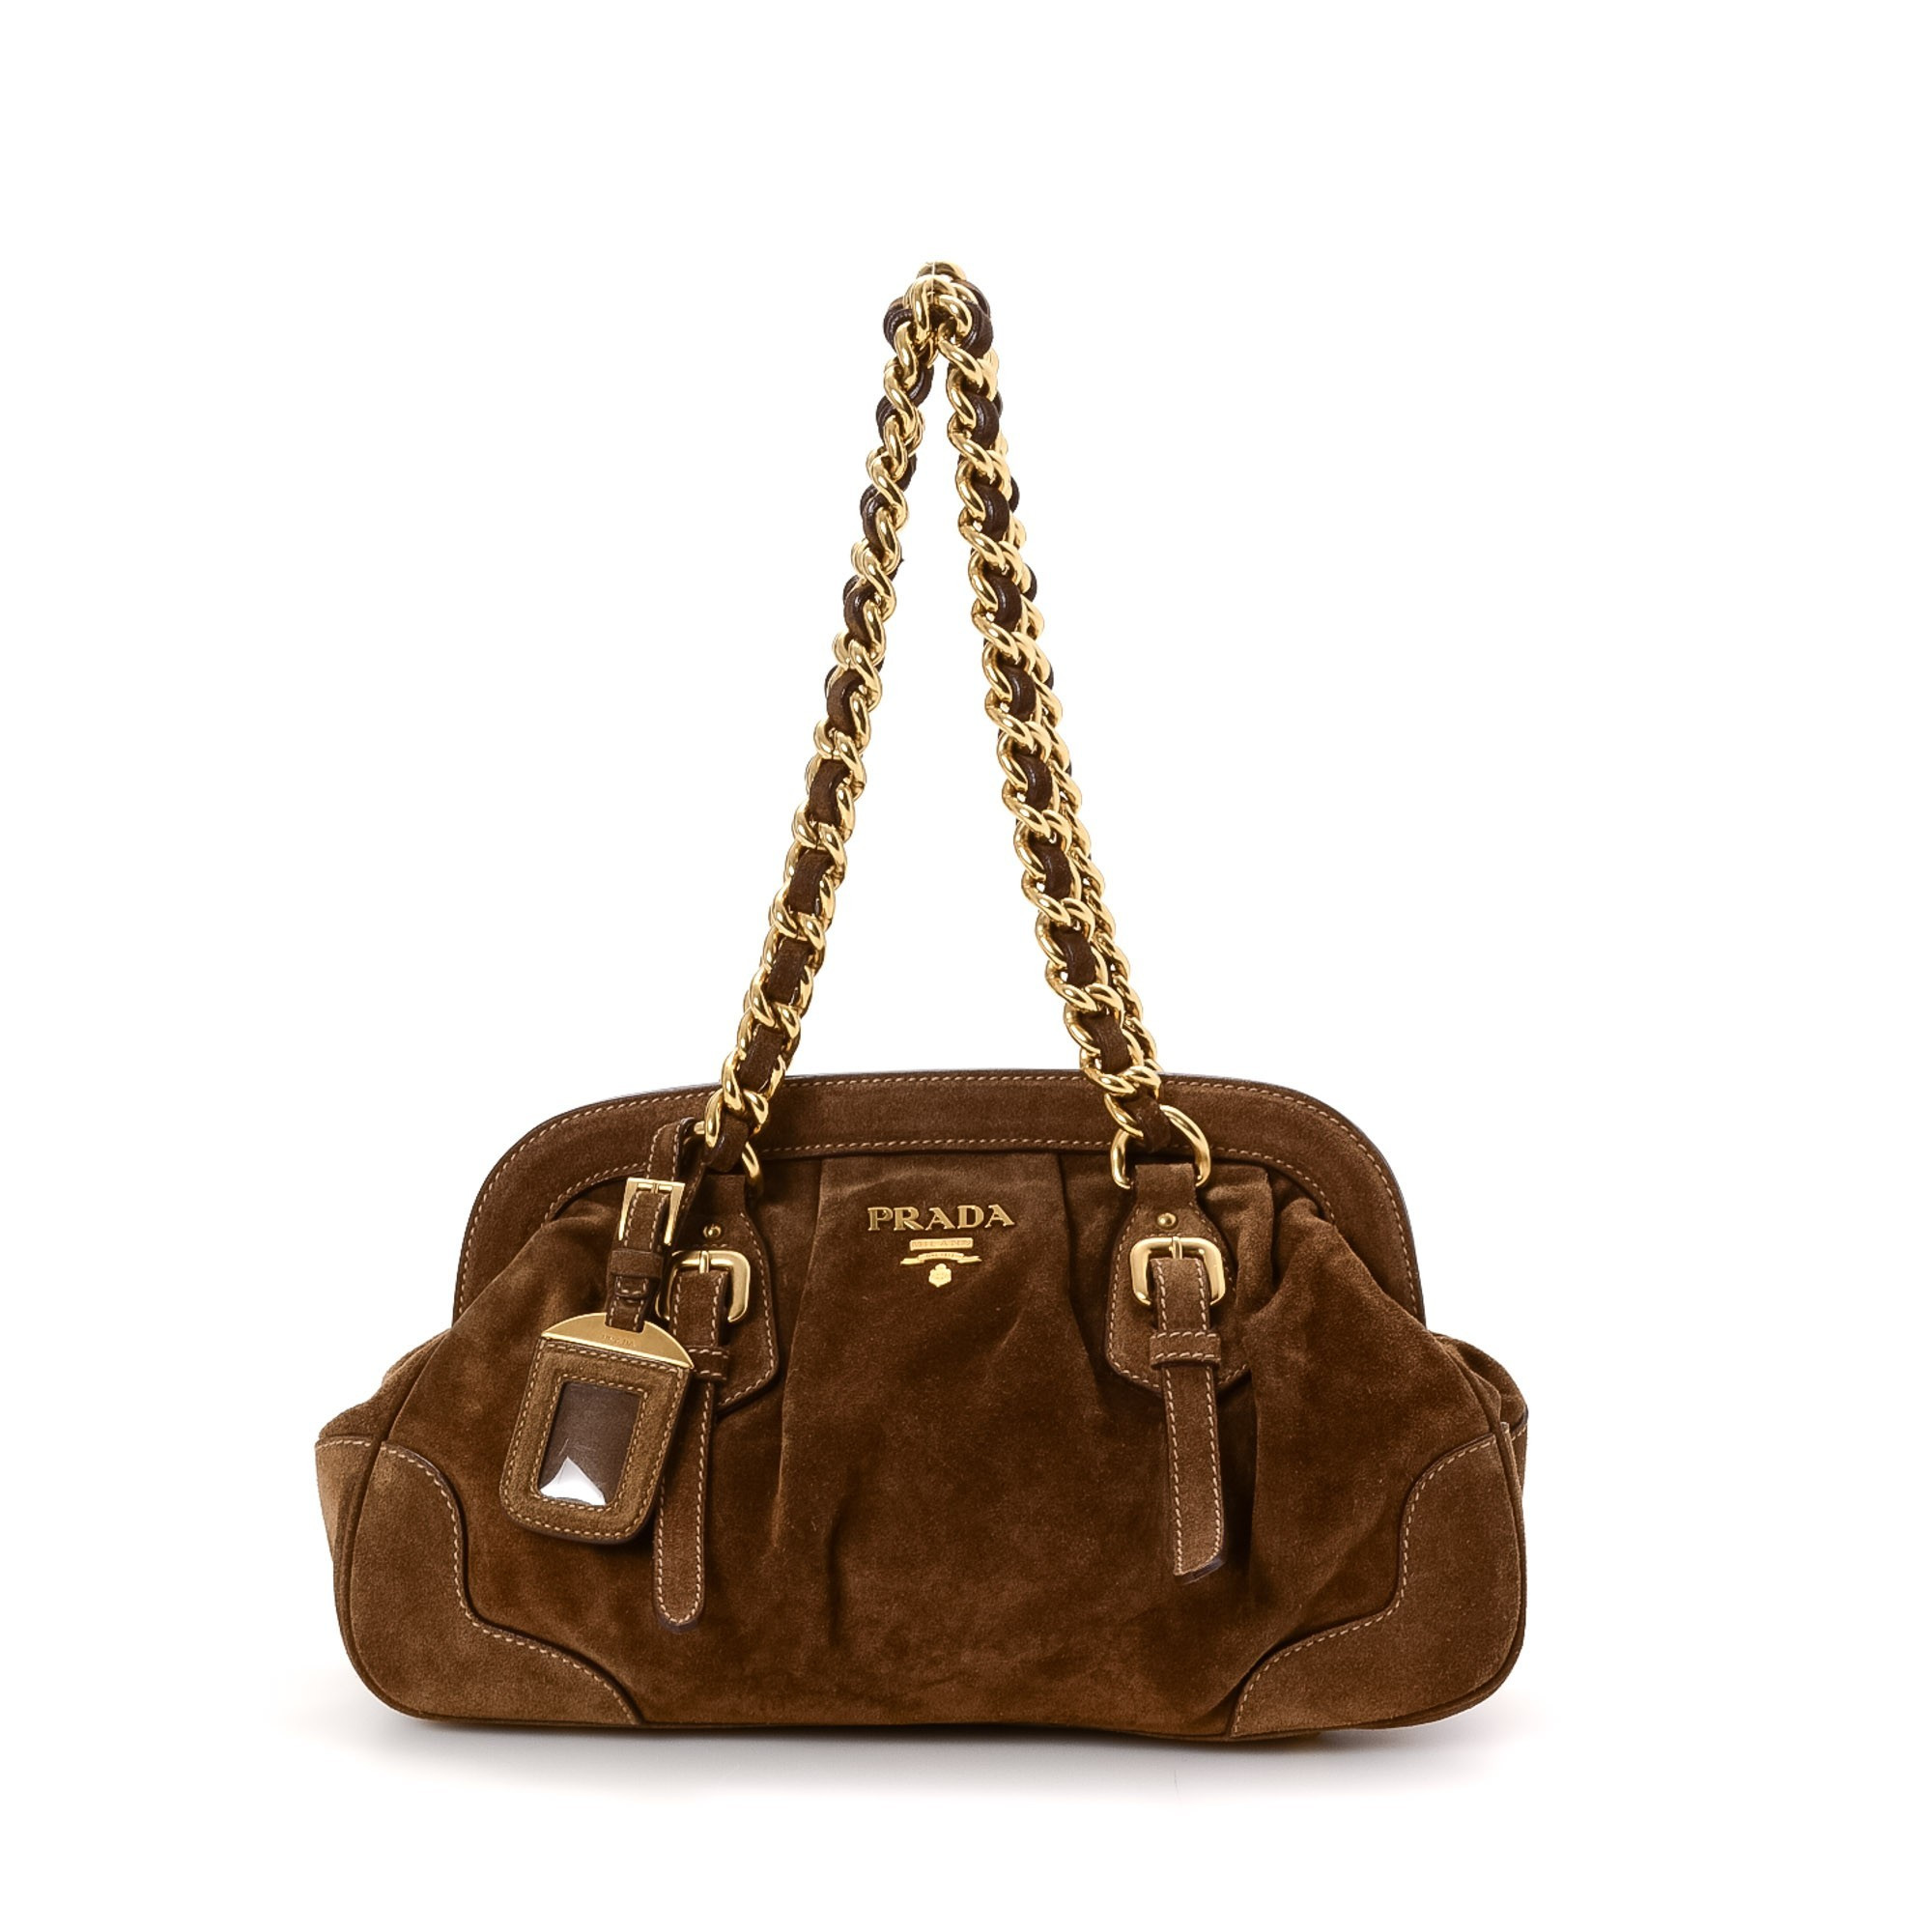 Prada Chain Shoulder Bag Brown Suede Shoulder Bag LXRCO